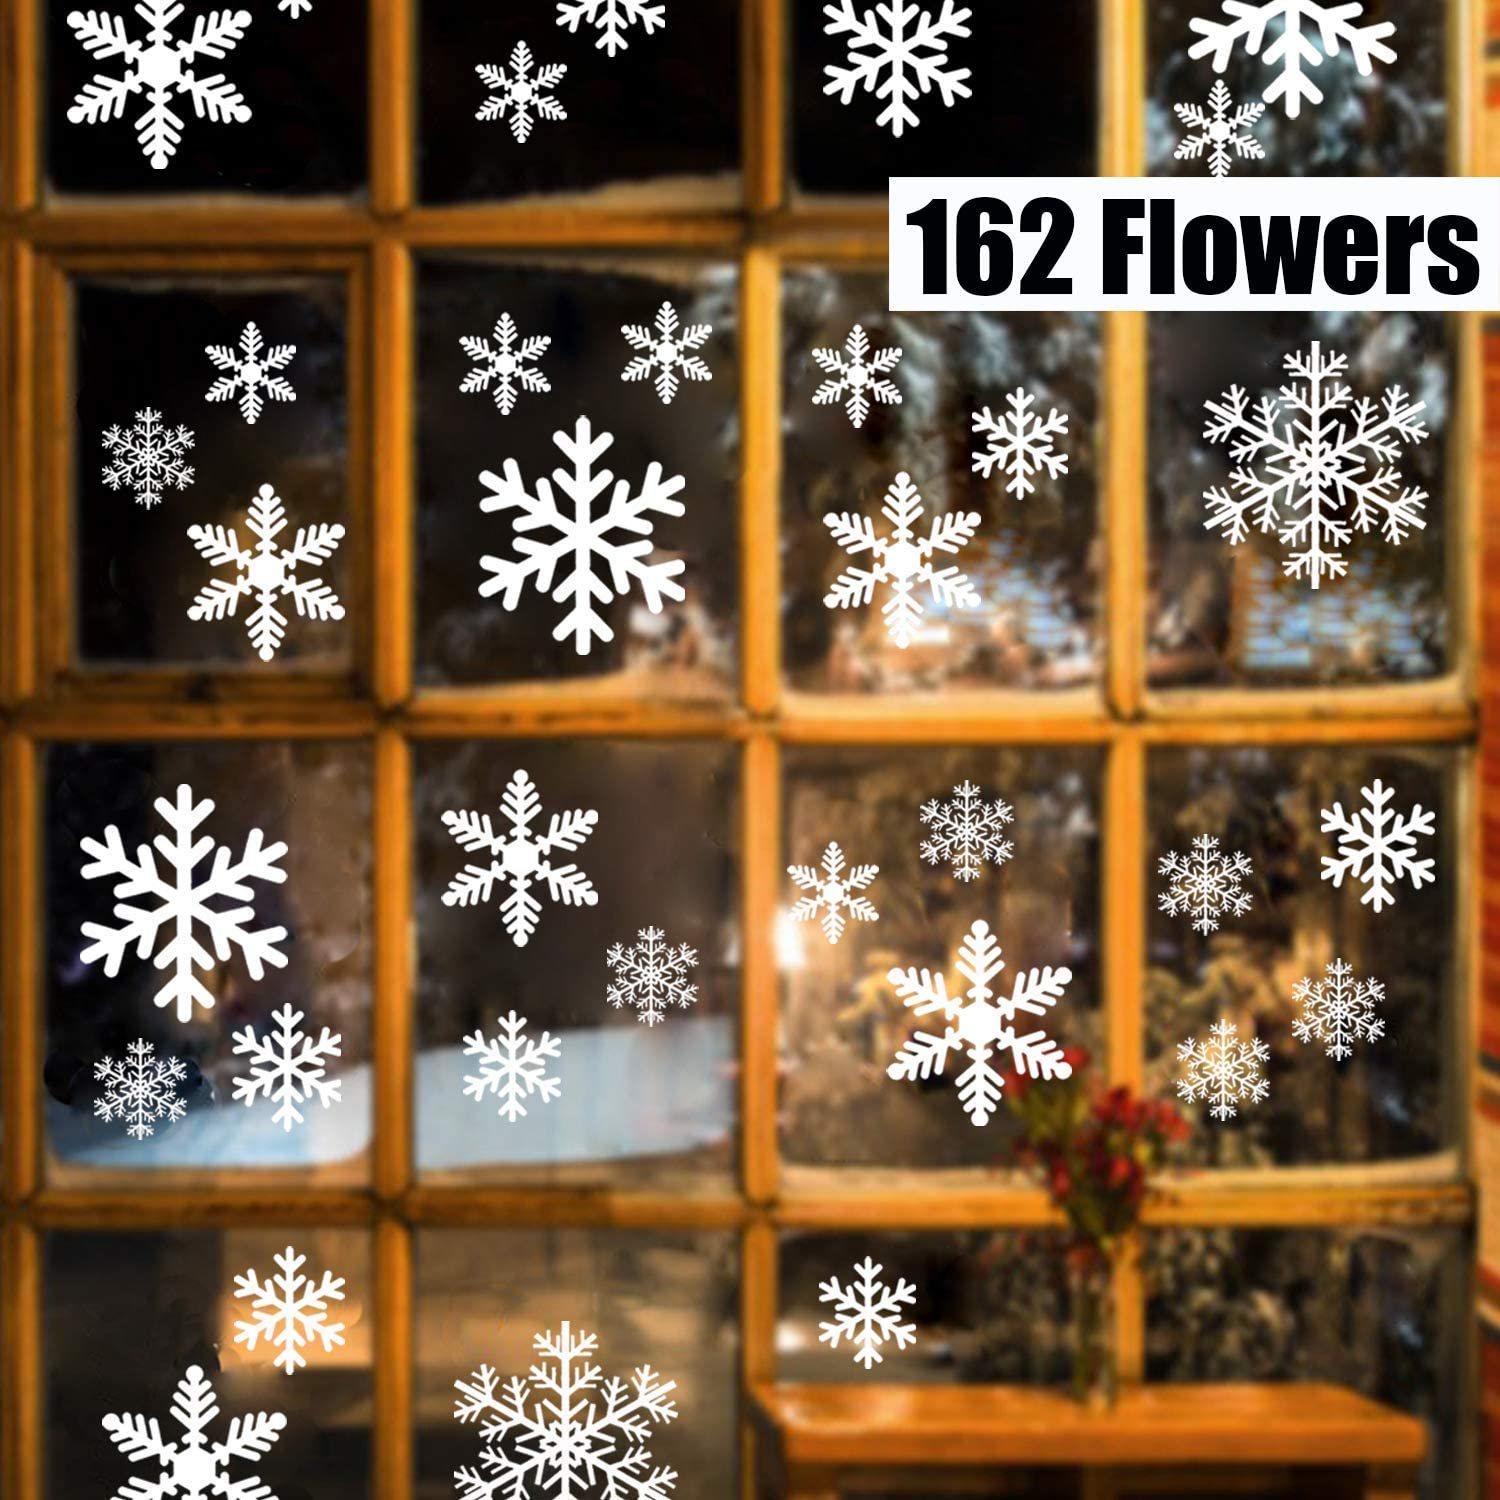 Snowflakes Window Clings PVC White Window Sticker Removable Special